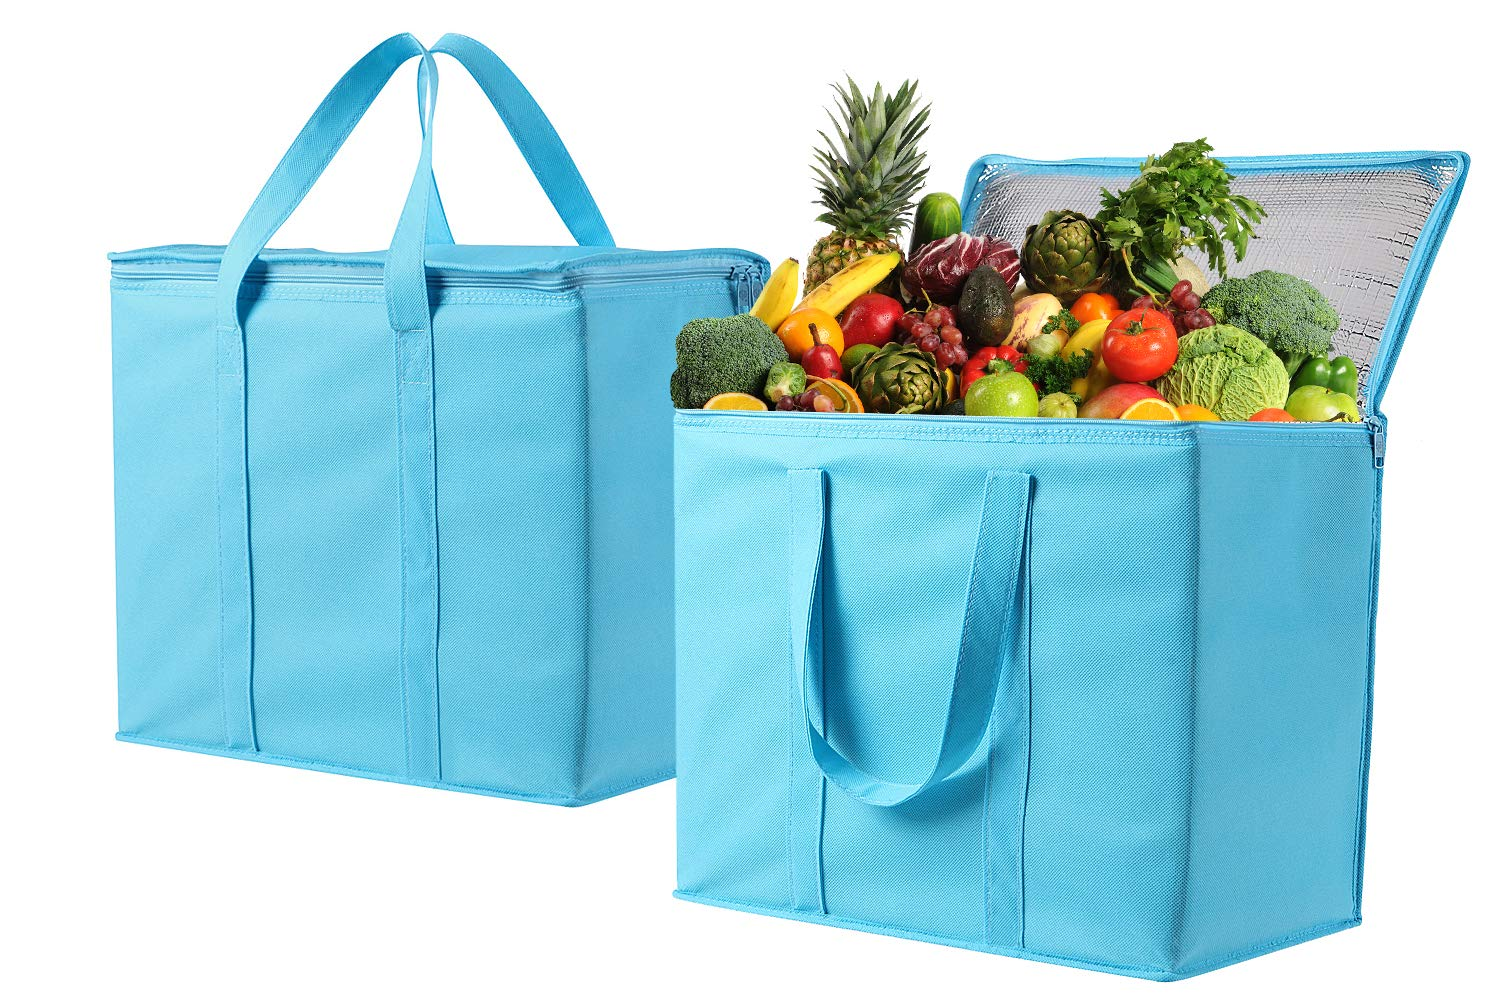 3 Pack Insulated Reusable Grocery Bags, 9 Cotton Produce Bags, 9 Polyester Mesh Bags, Best Value Combination, Durable, Large Size, Collapsible, Eco-Friendly, One Stop Solution for All Your Grocery Bag